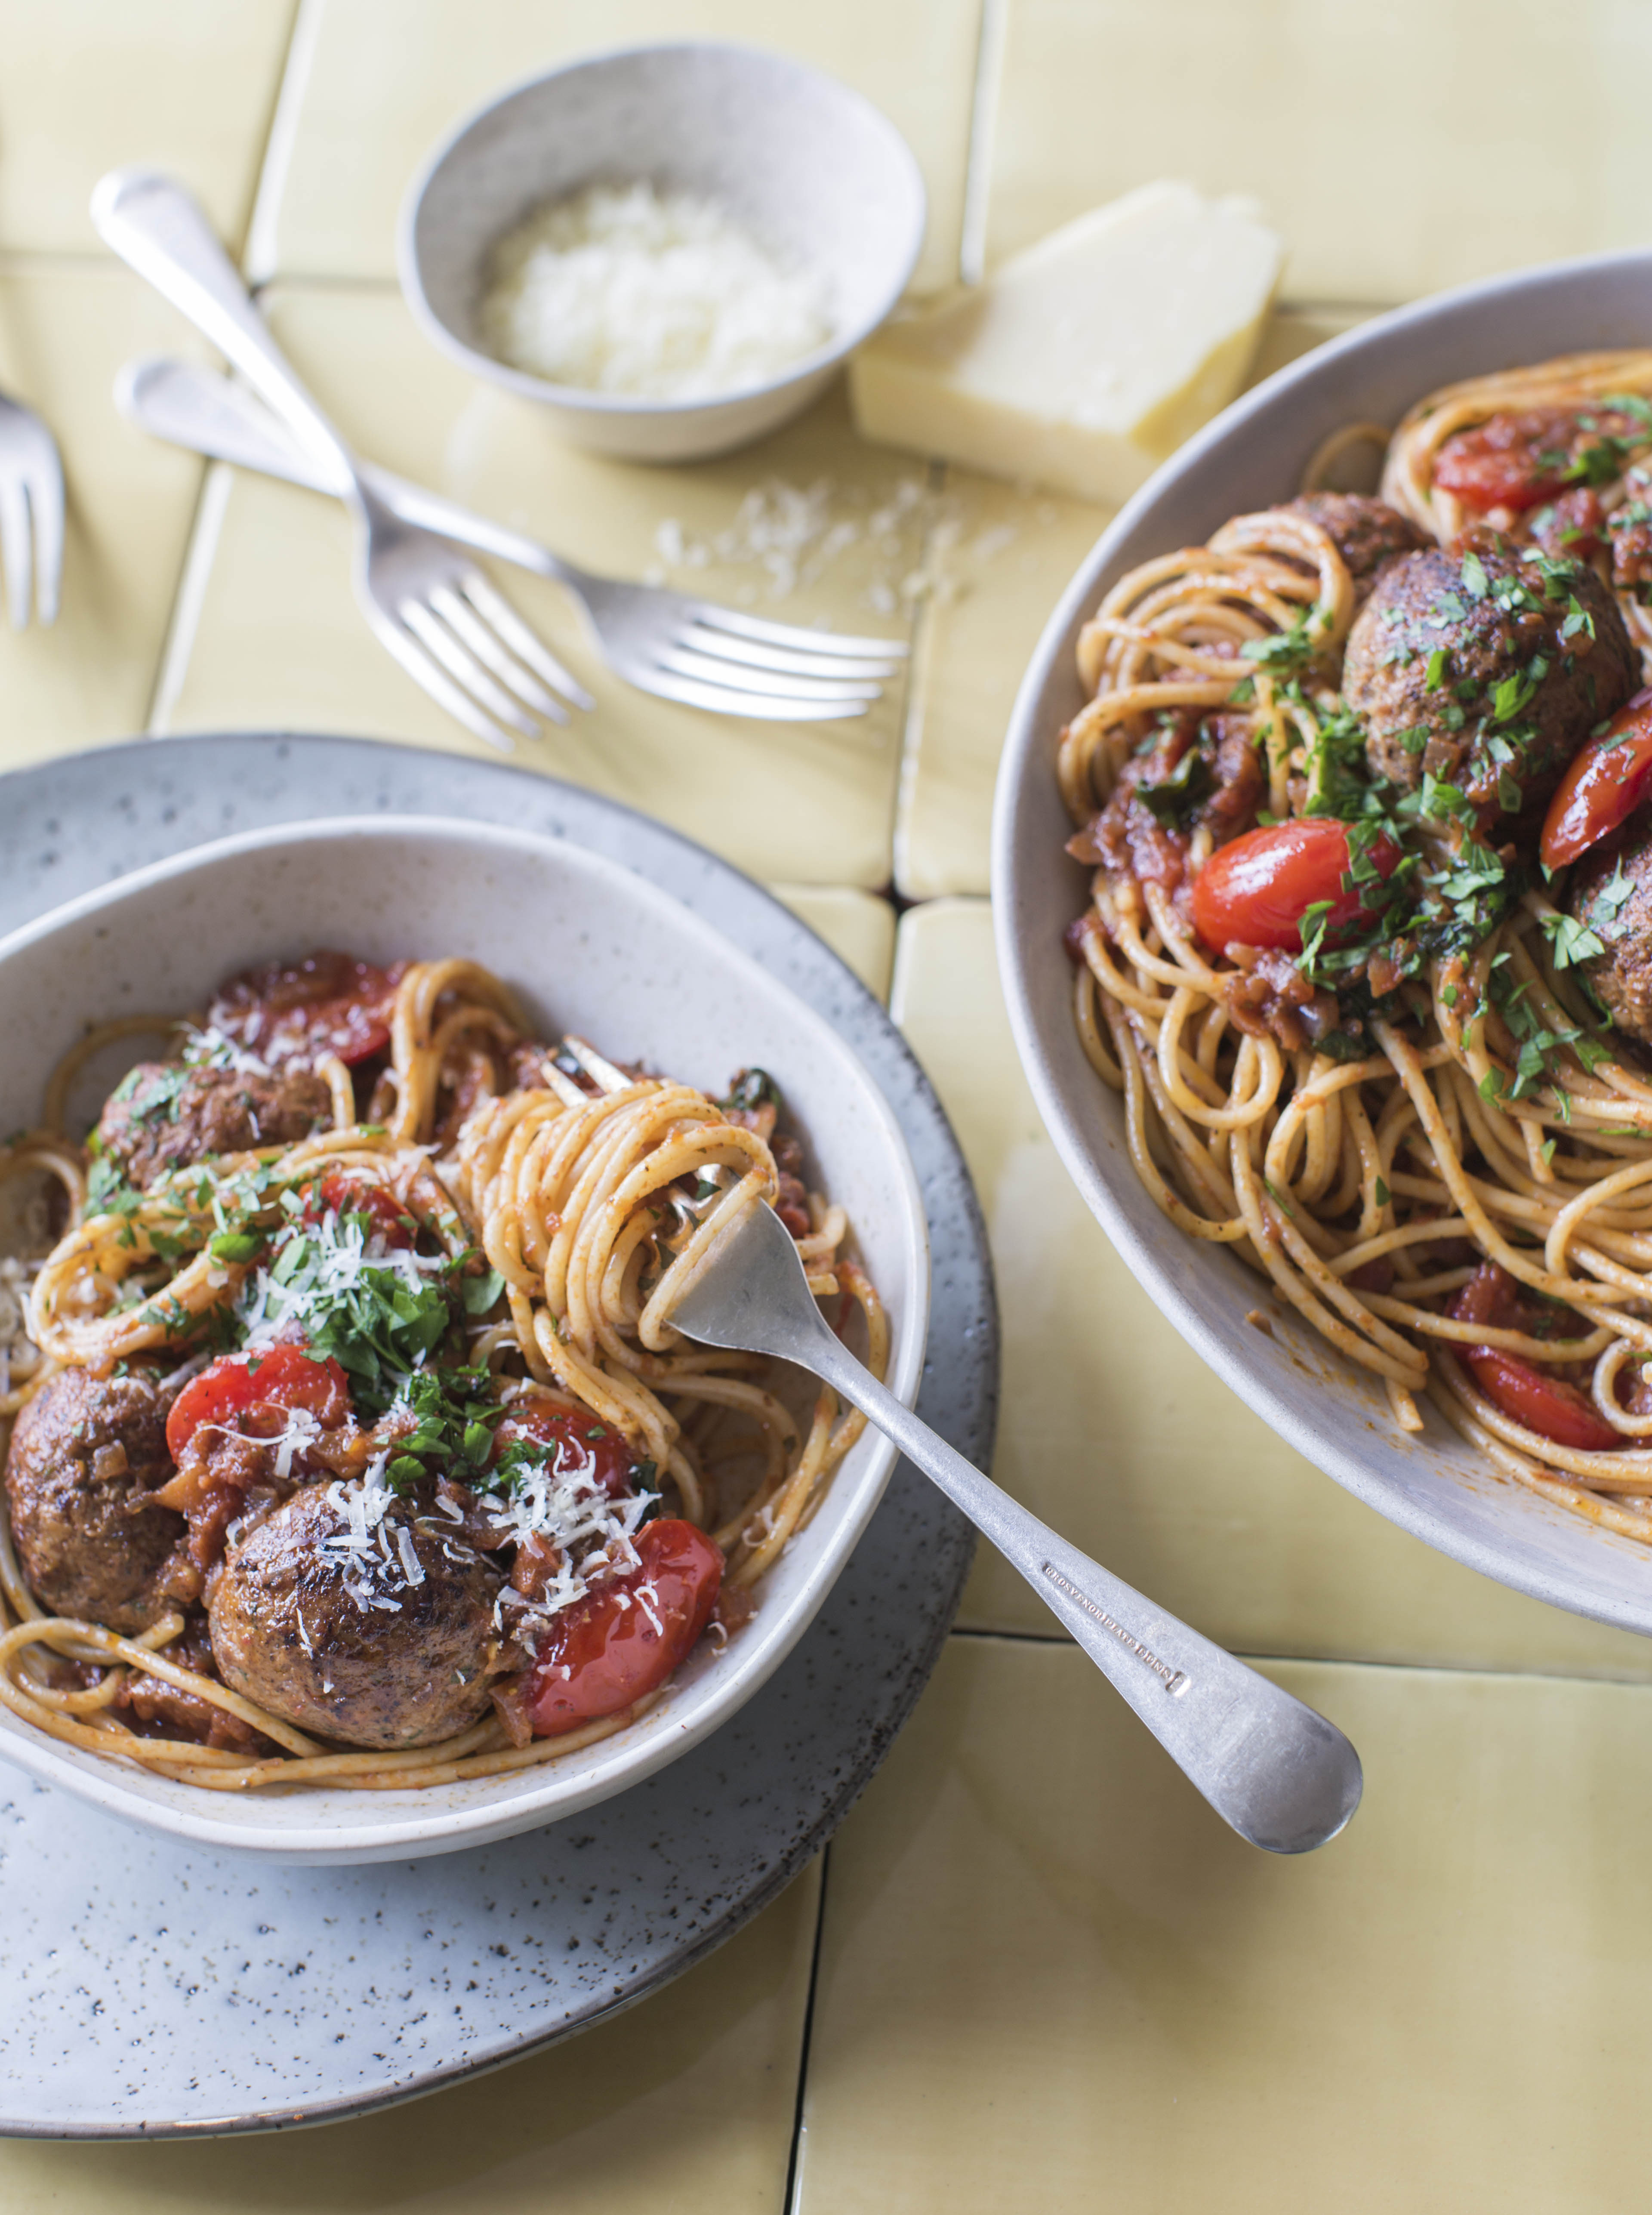 Chelseawinter Co Nz The Best Spaghetti And Meatballs Chelseawinter